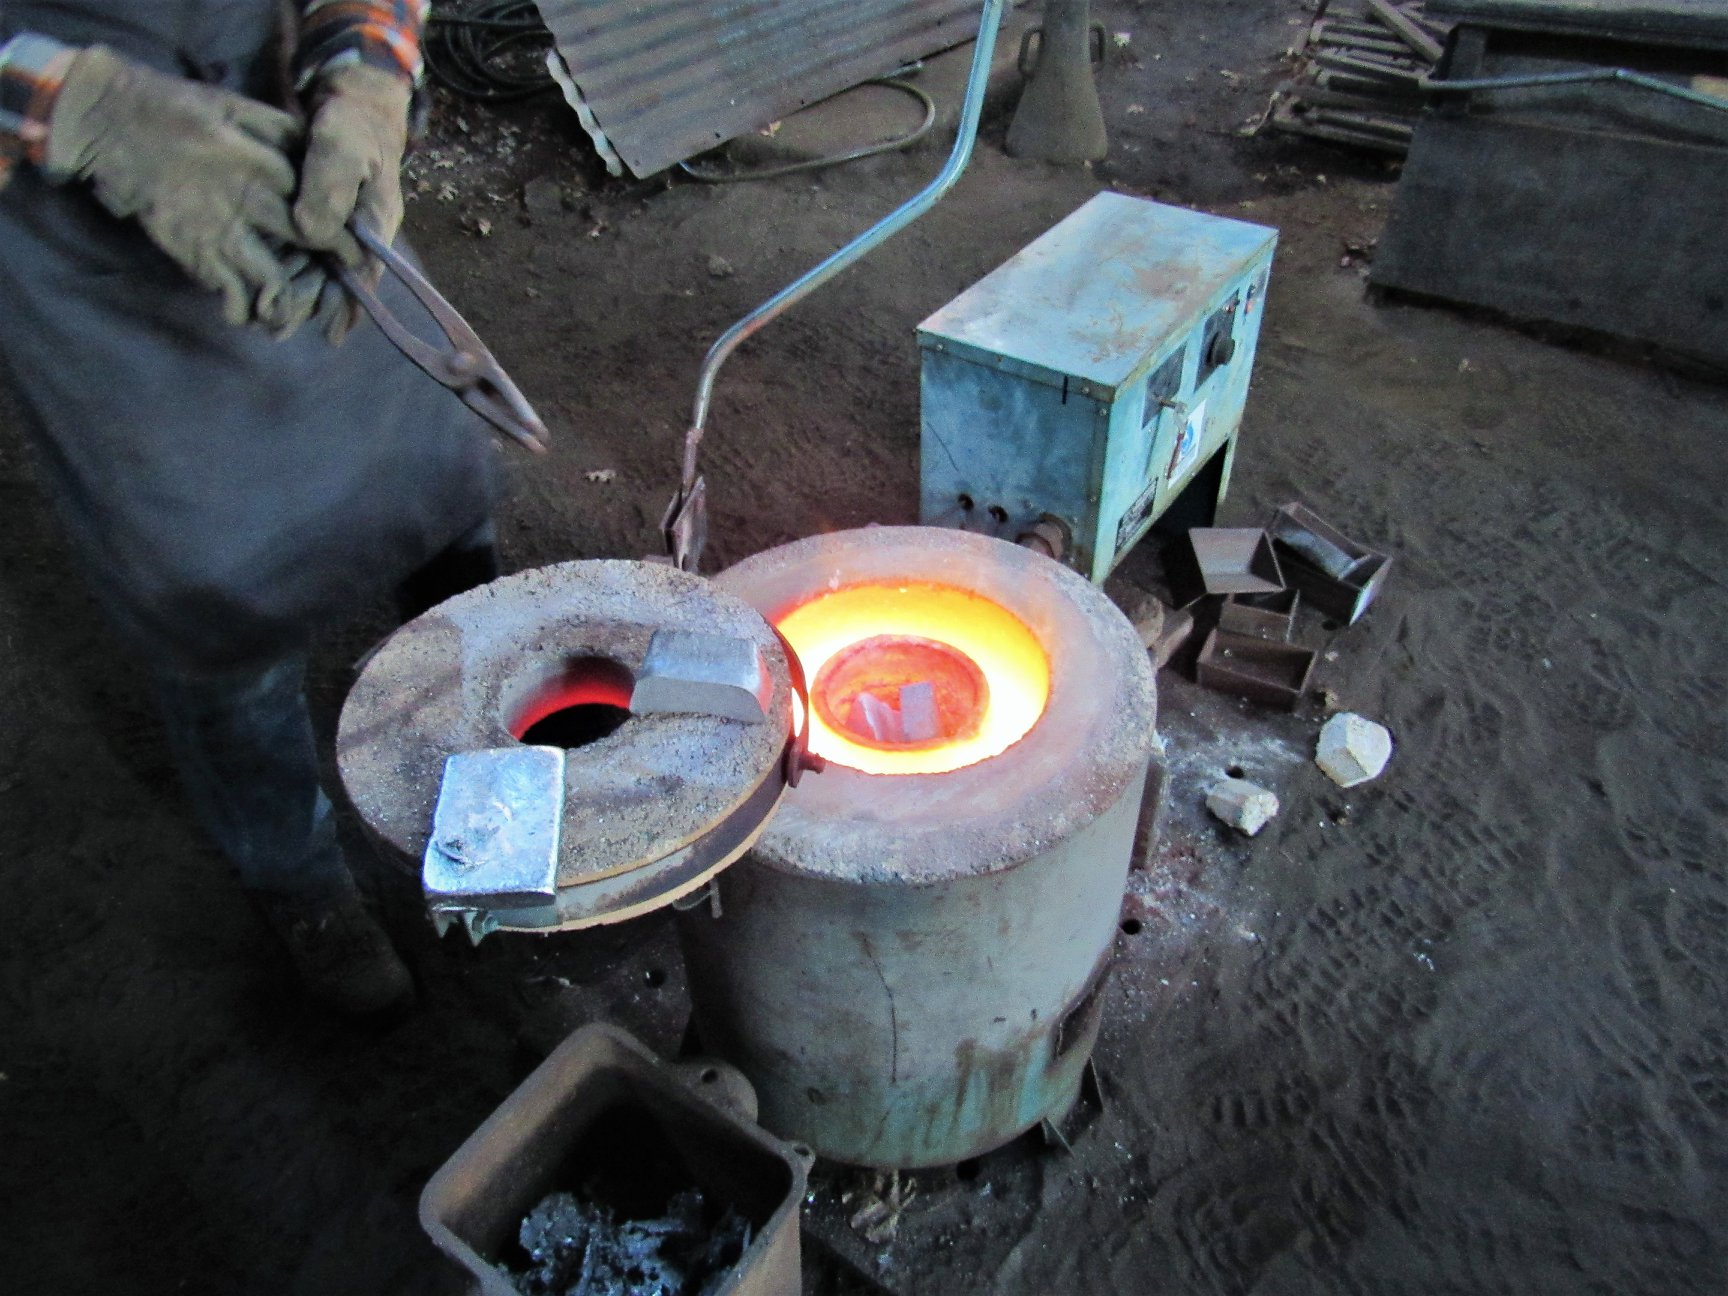 4_Crucible-furnace-with-metal-inserted-and-starting-to-melt